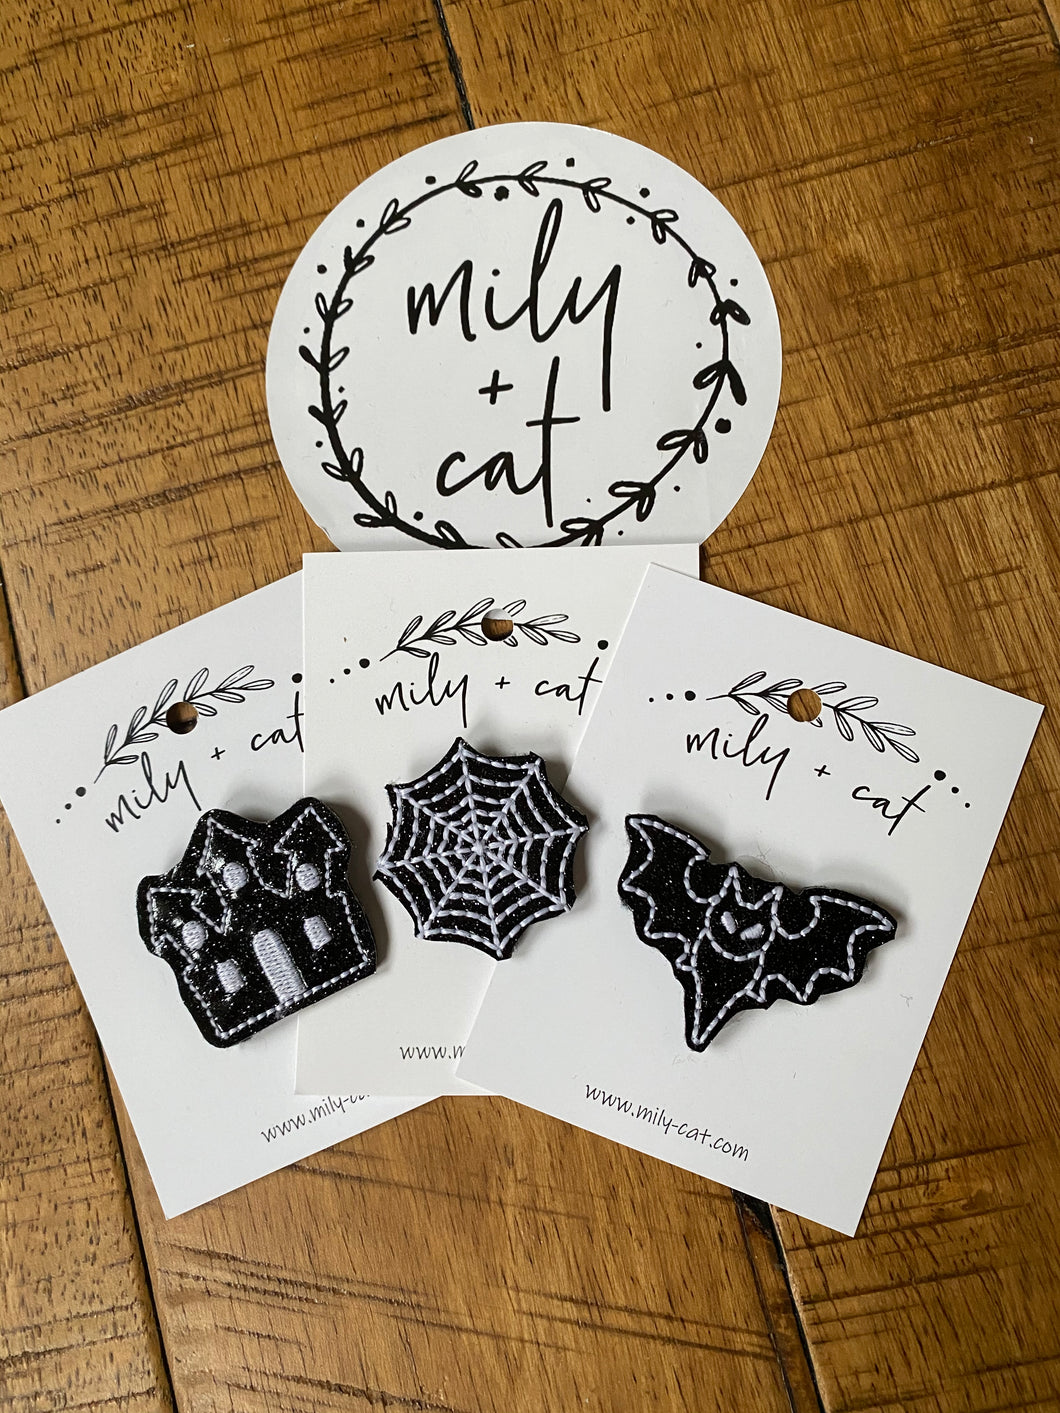 Glow in the dark Halloween Haunted House, Spider Web & Bat Badge Buddies